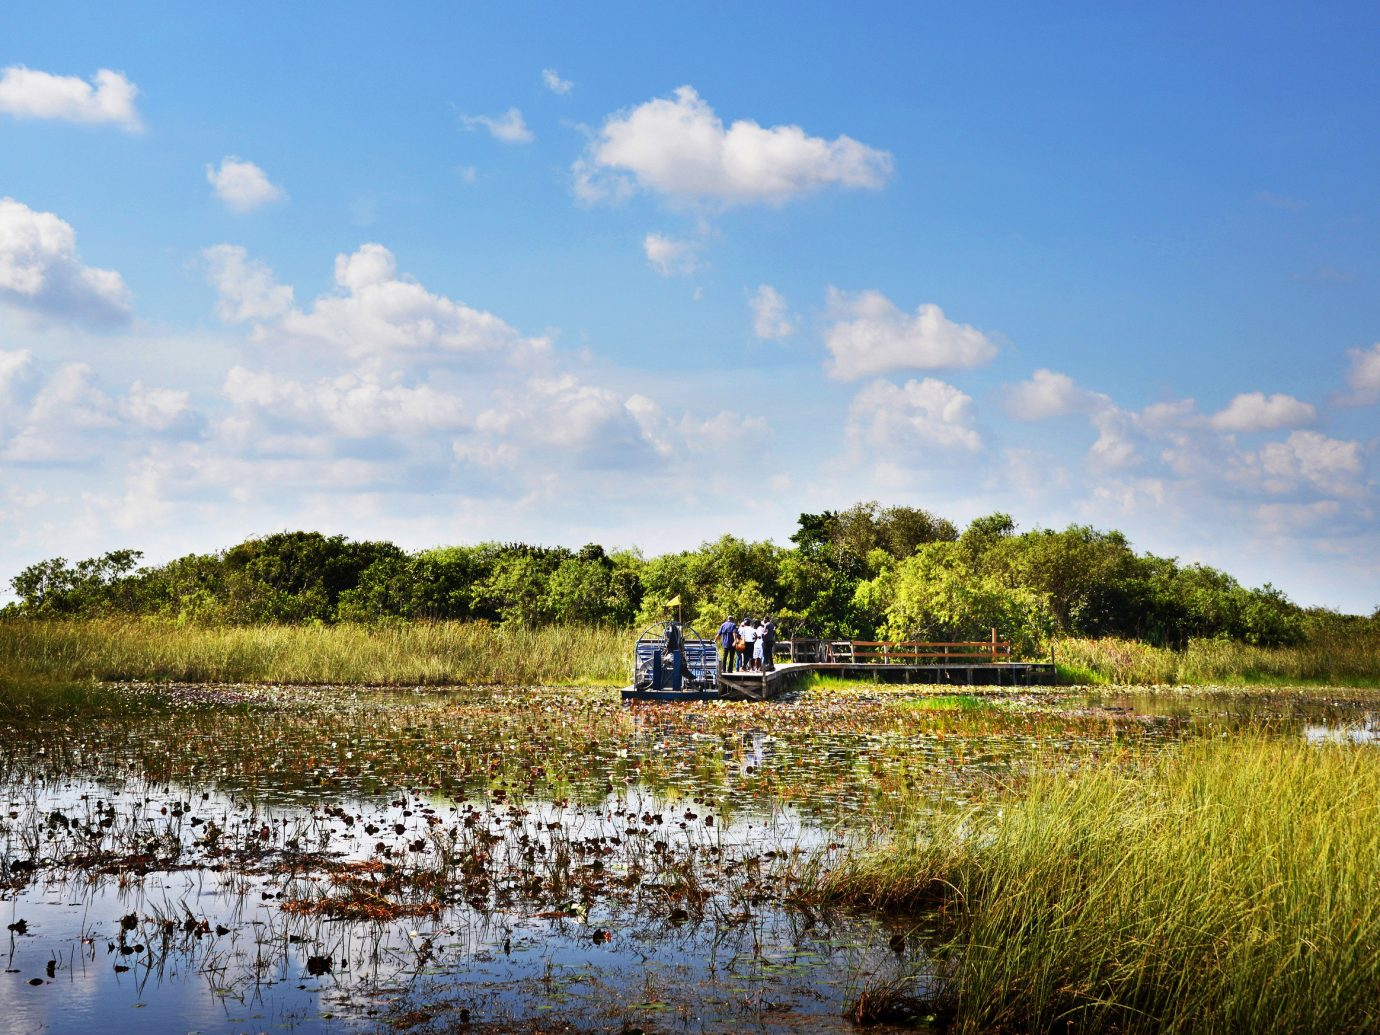 Florida Miami National Parks Outdoors + Adventure Trip Ideas Weekend Getaways outdoor sky grass water habitat Nature River reflection geographical feature shore natural environment pond wetland cloud marsh Lake loch morning rural area landscape waterway vehicle Sea reservoir day